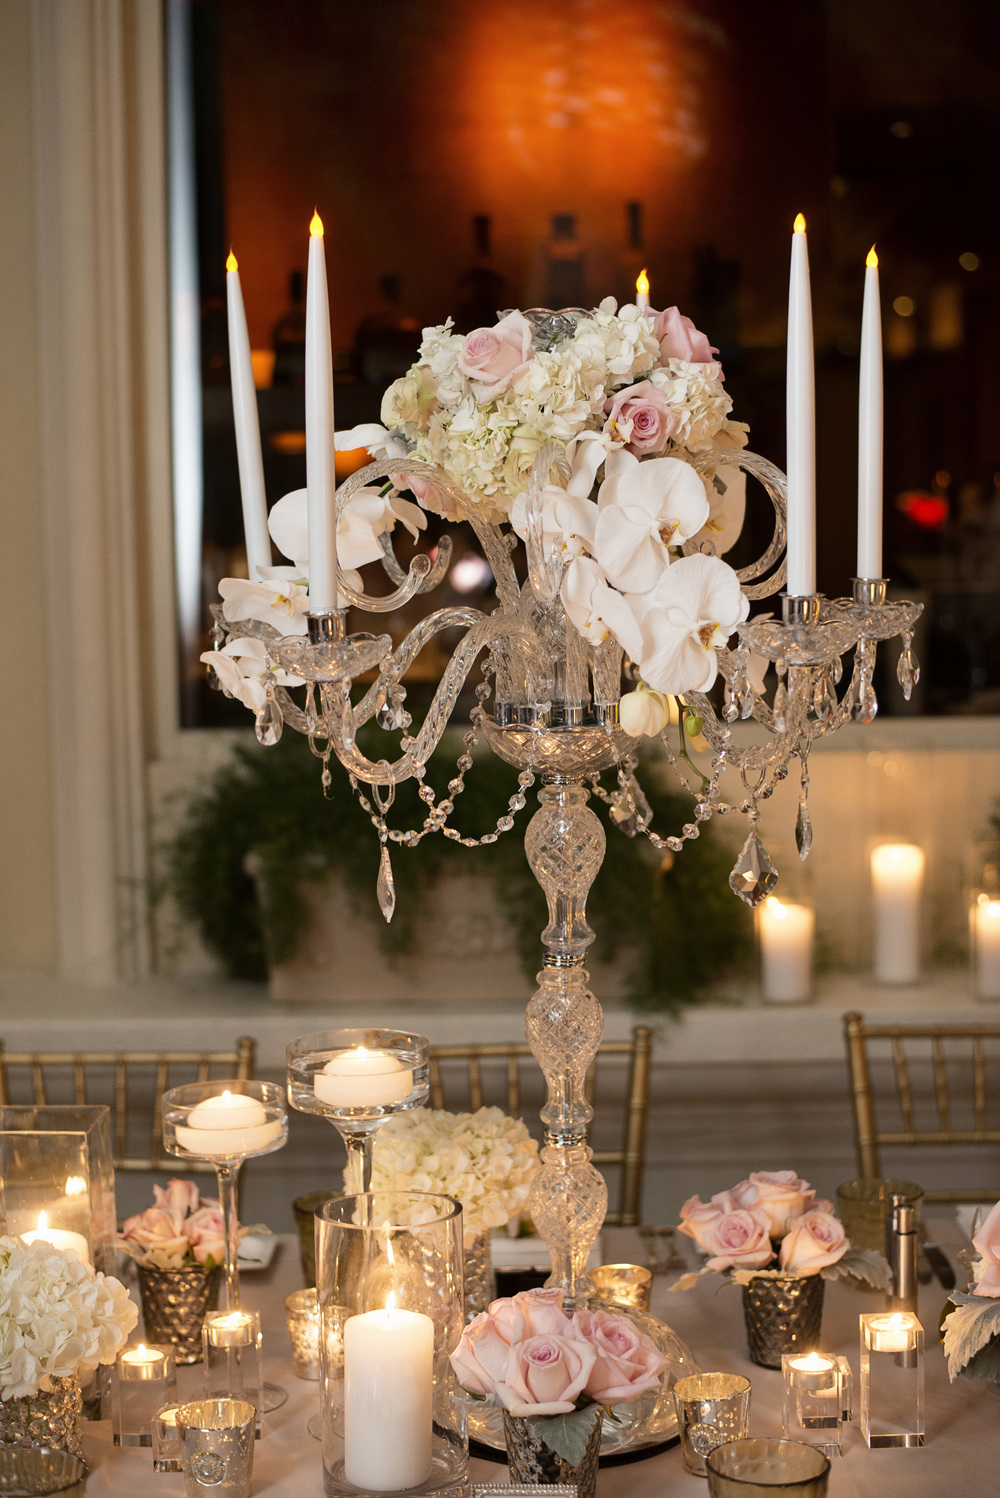 Crystal Candelabra topped with Classic Roses and Orchids - An Intimate Wedding at Four Seasons Las Vegas.